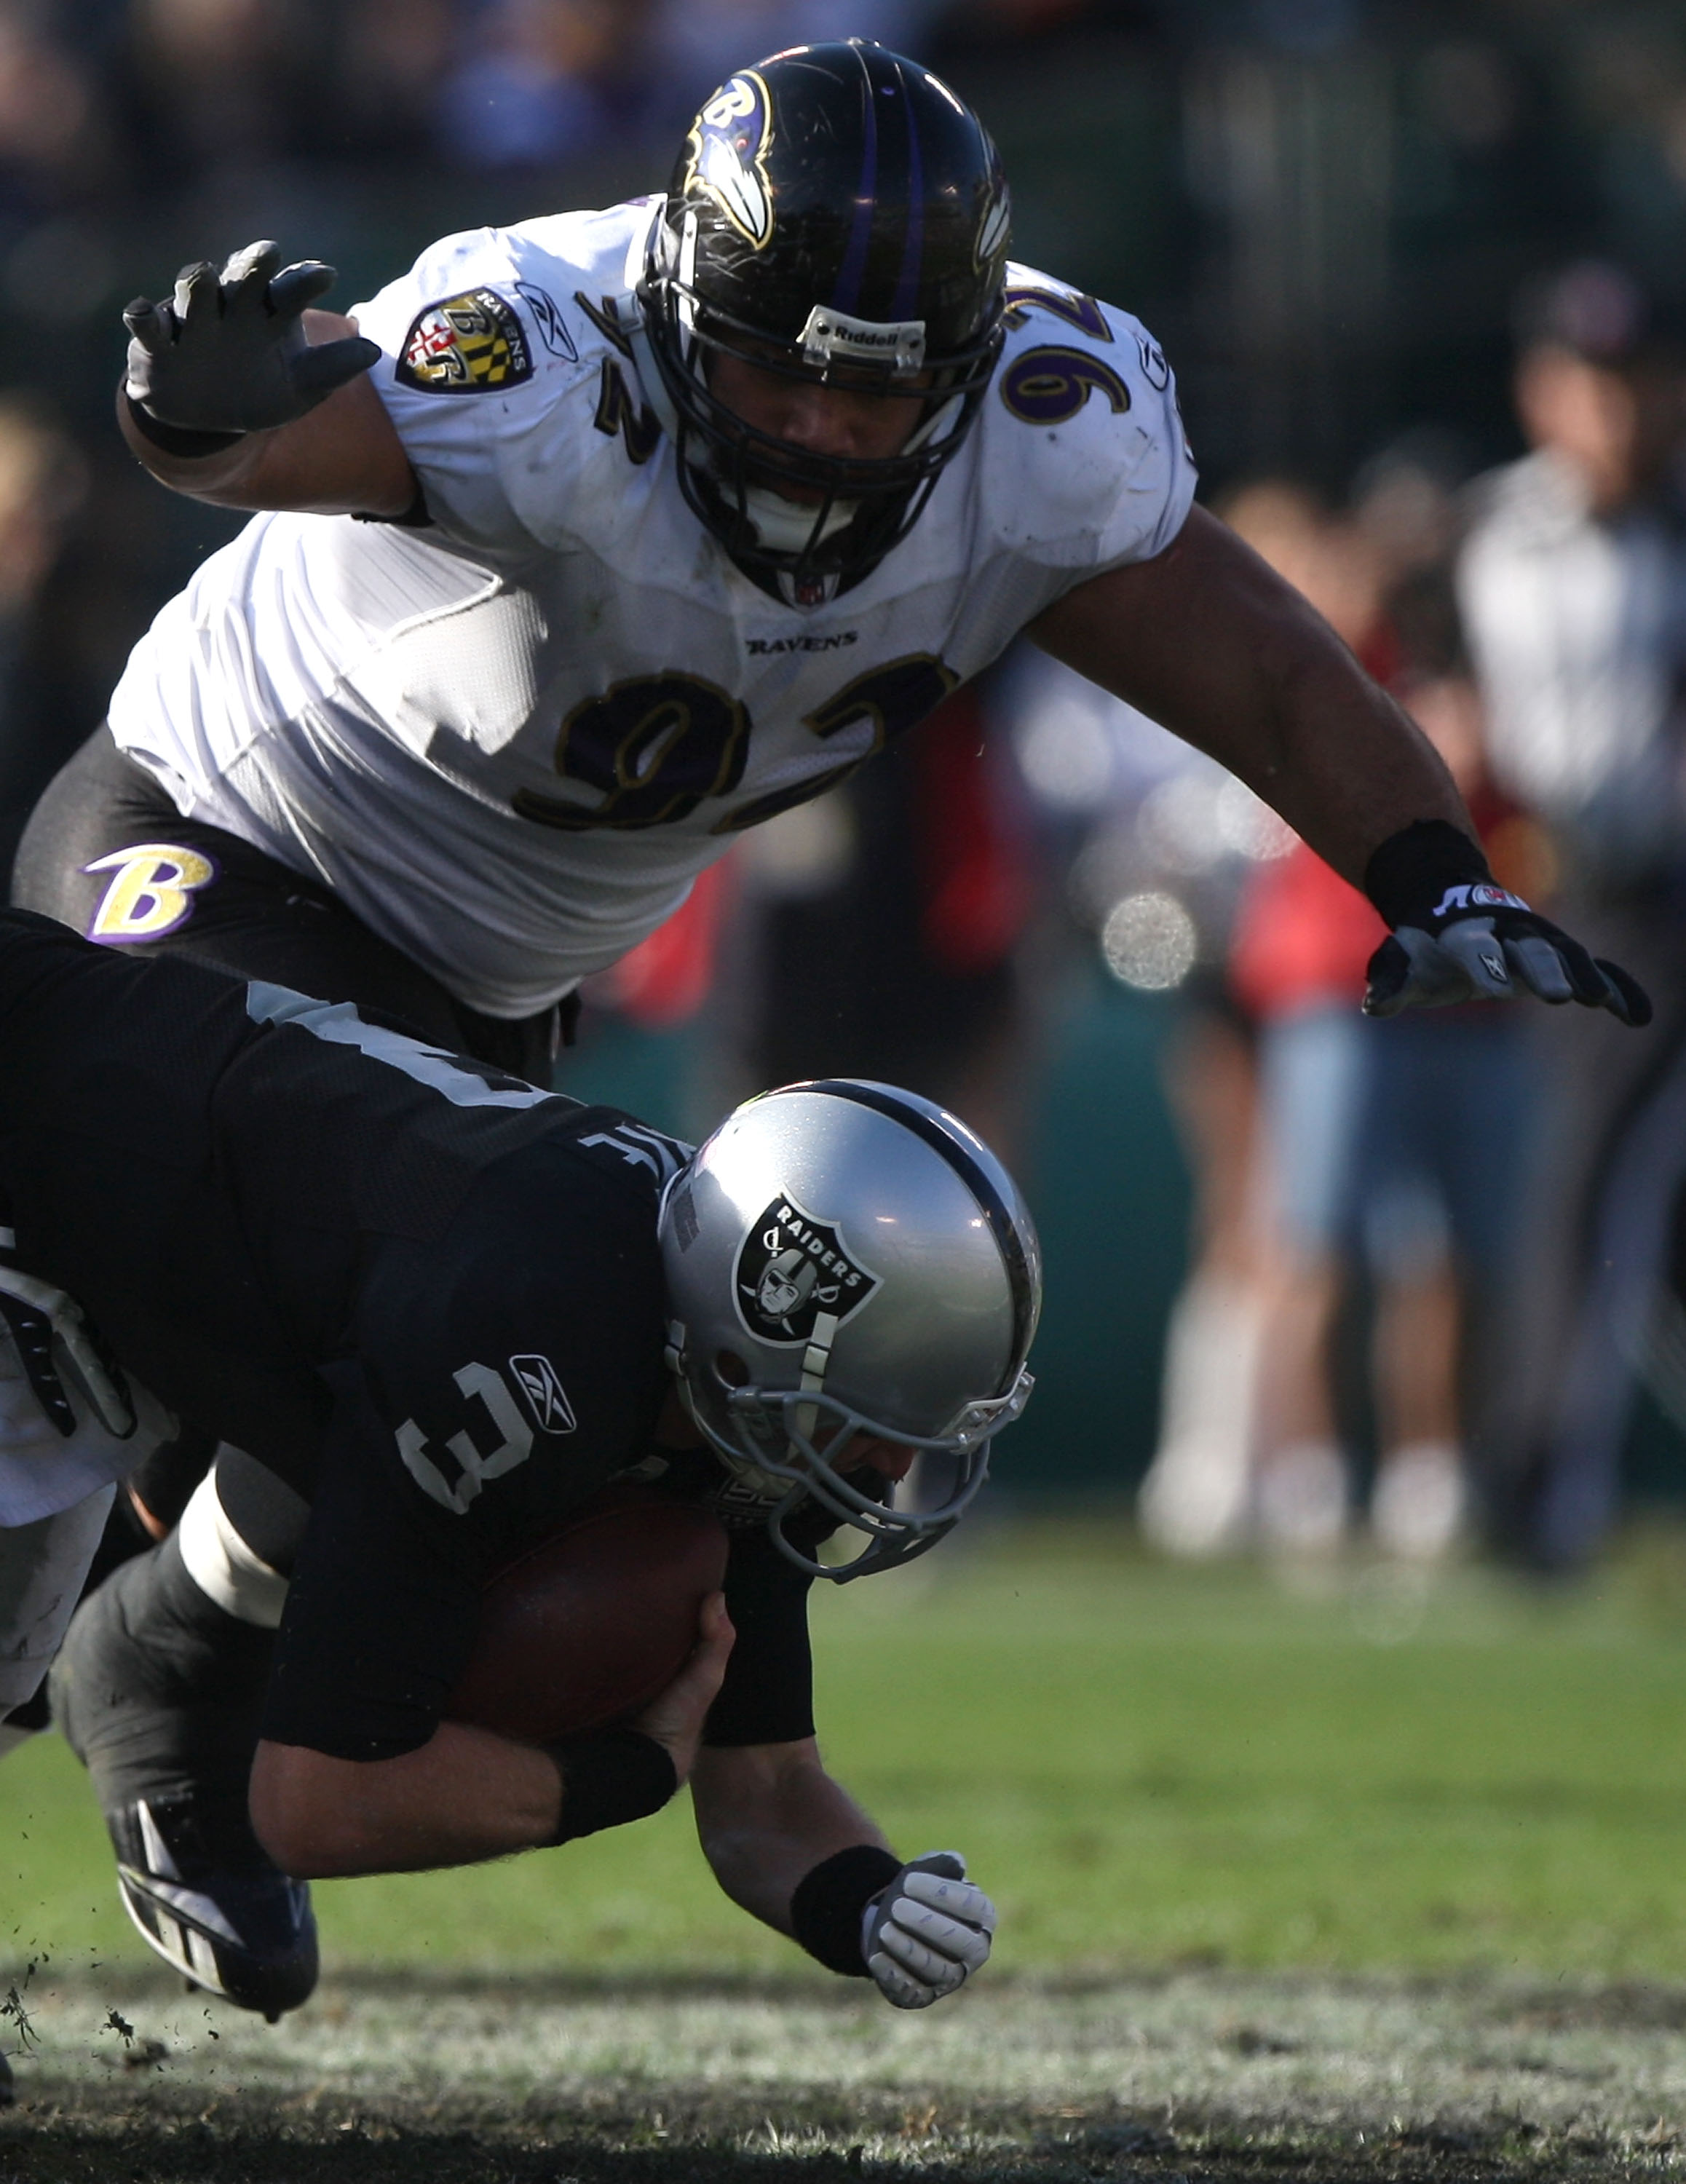 OAKLAND, CA - JANUARY 3: Haloti Ngata #92 of the Baltimore Ravens sacks Charlie Fry #3 of the Oakland Raiders during an NFL game at Oakland-Alameda County Coliseum on January 3, 2010 in Oakland, California. (Photo by Jed Jacobsohn/Getty Images)